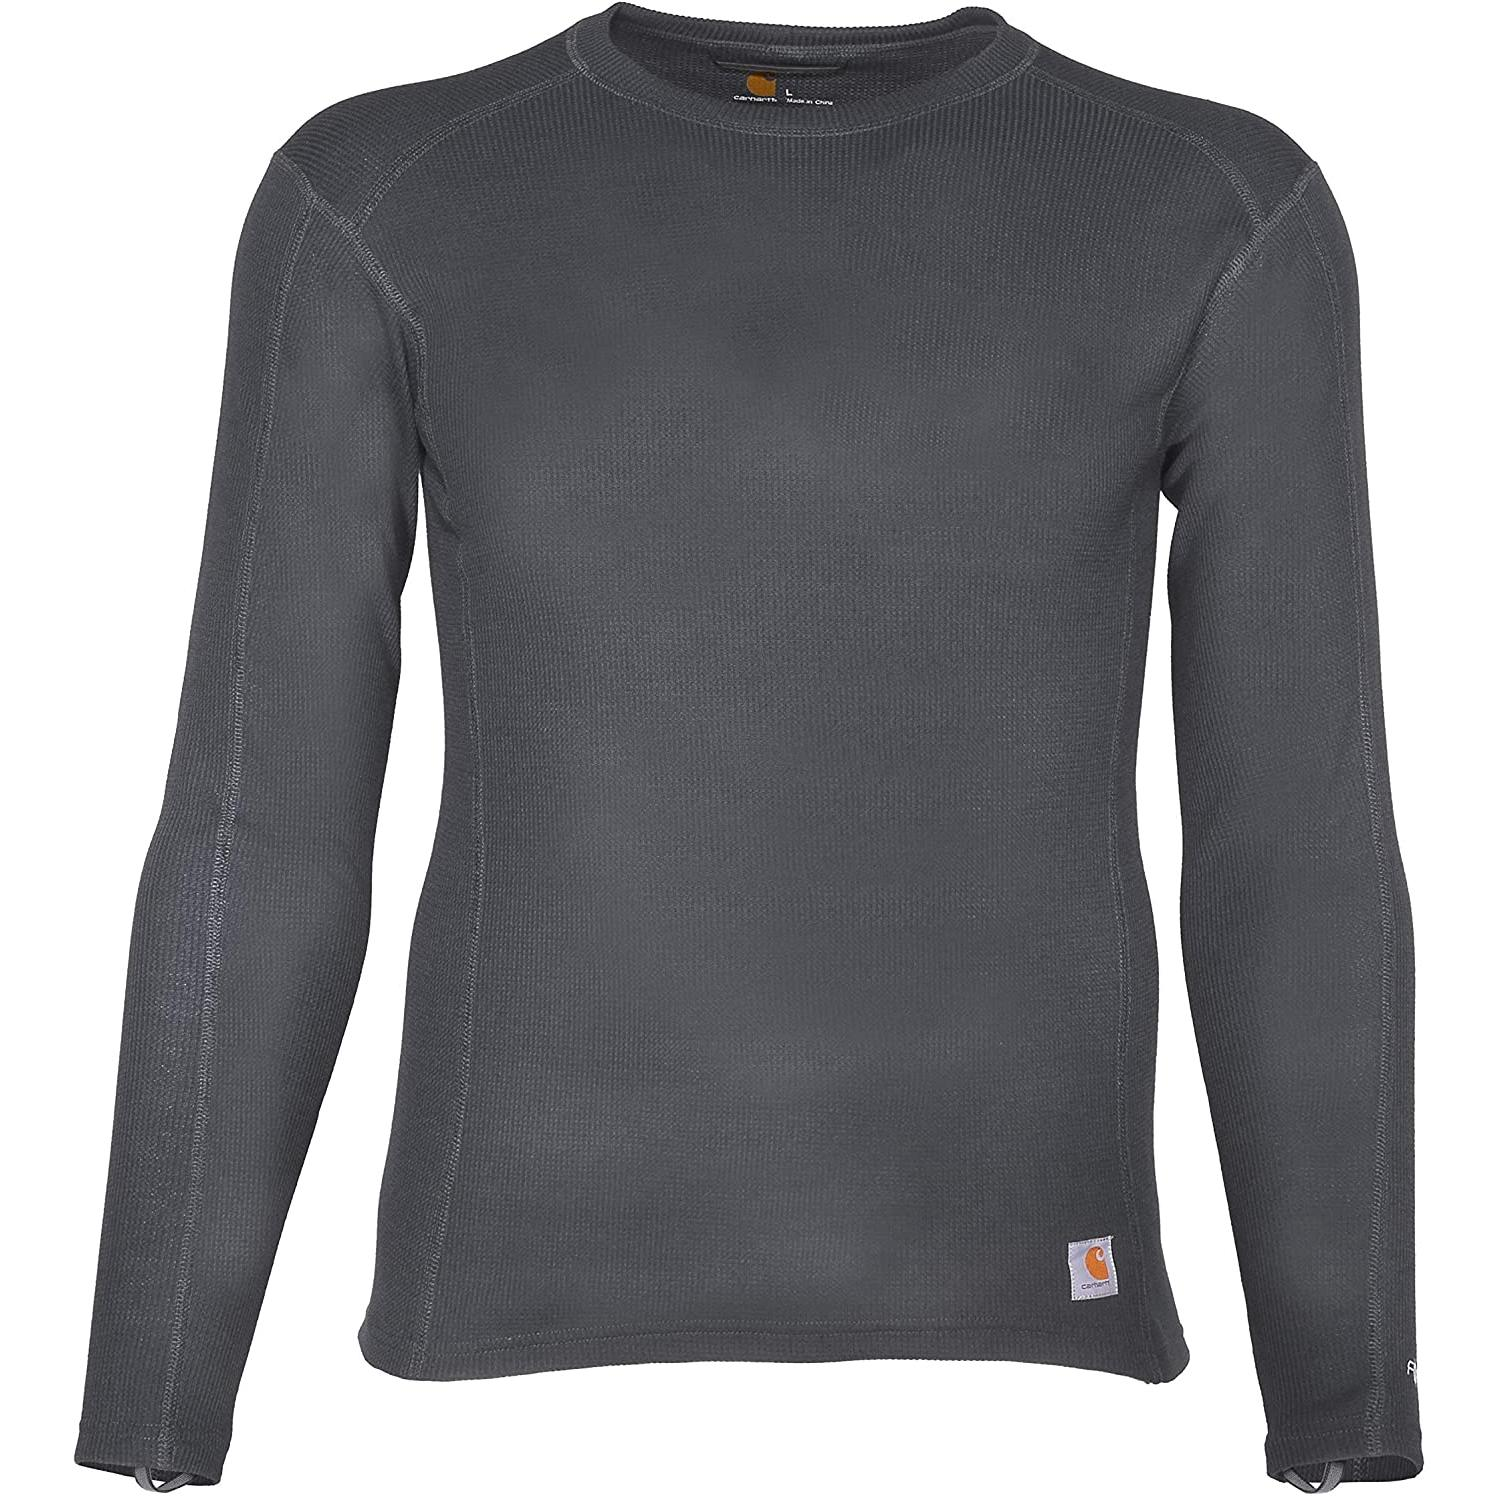 Carhartt Mens Base Force Midweight Classic Thermal Base Layer Long Sleeve Shirt Base Layer